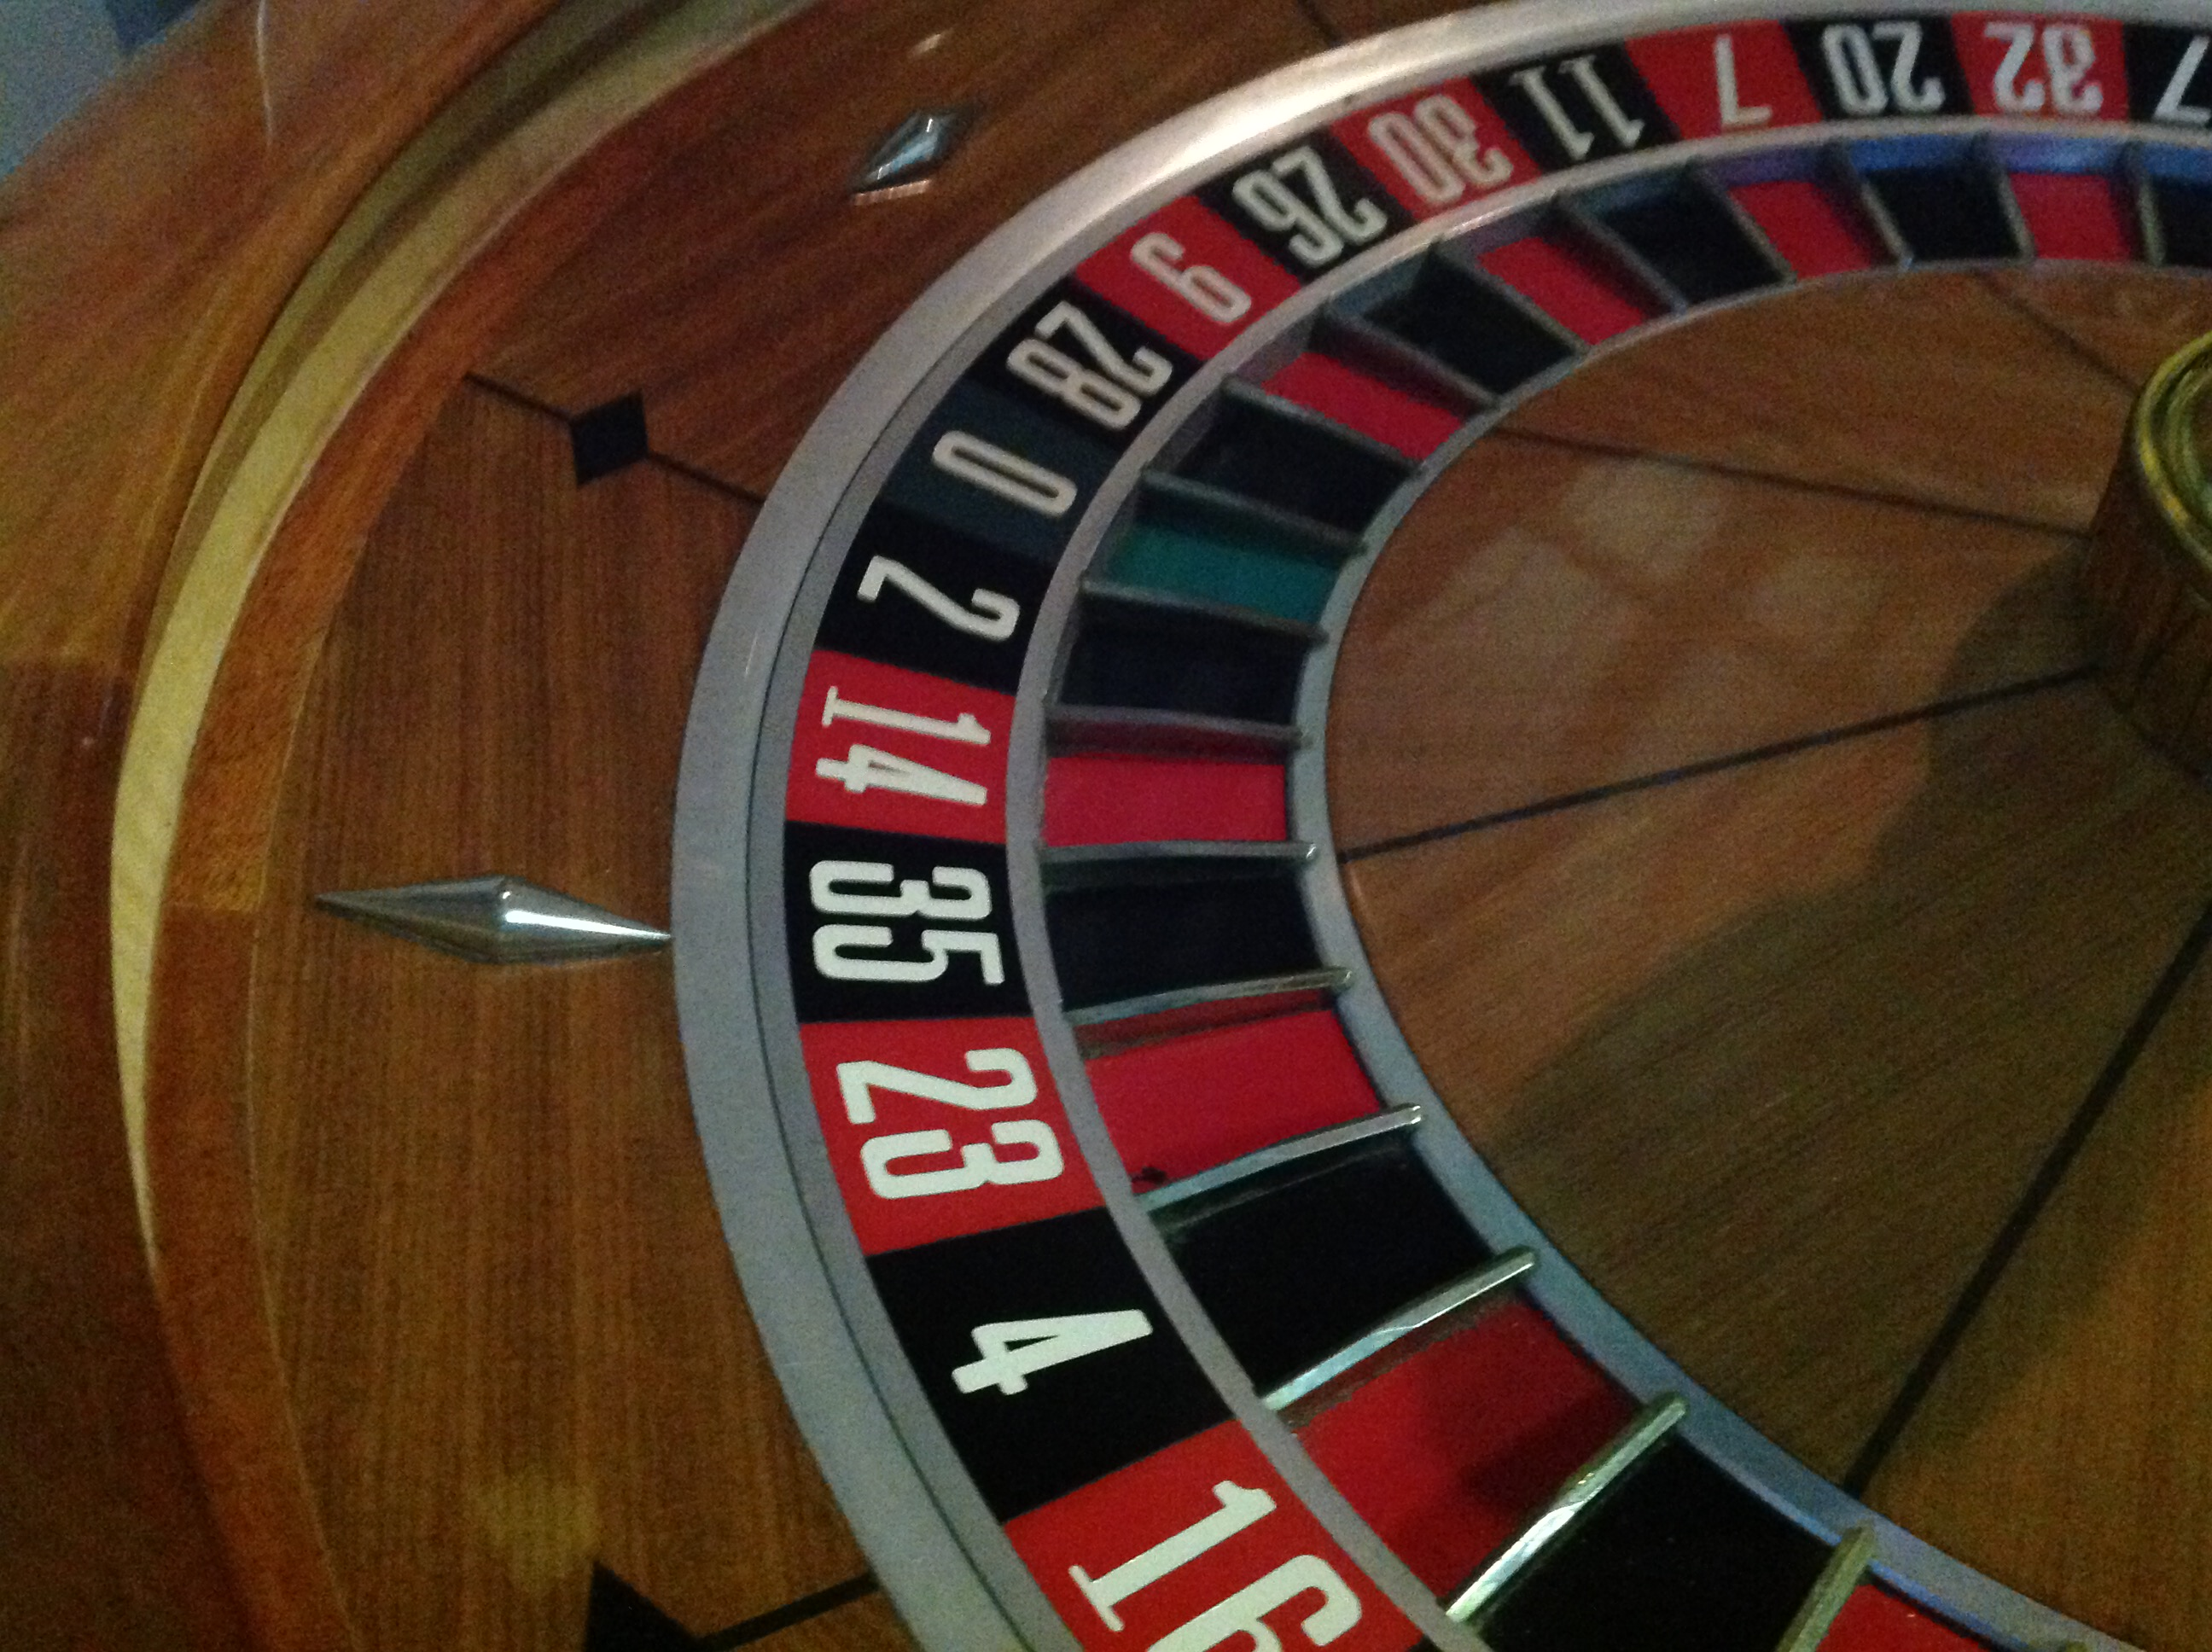 Blackjack games for fun